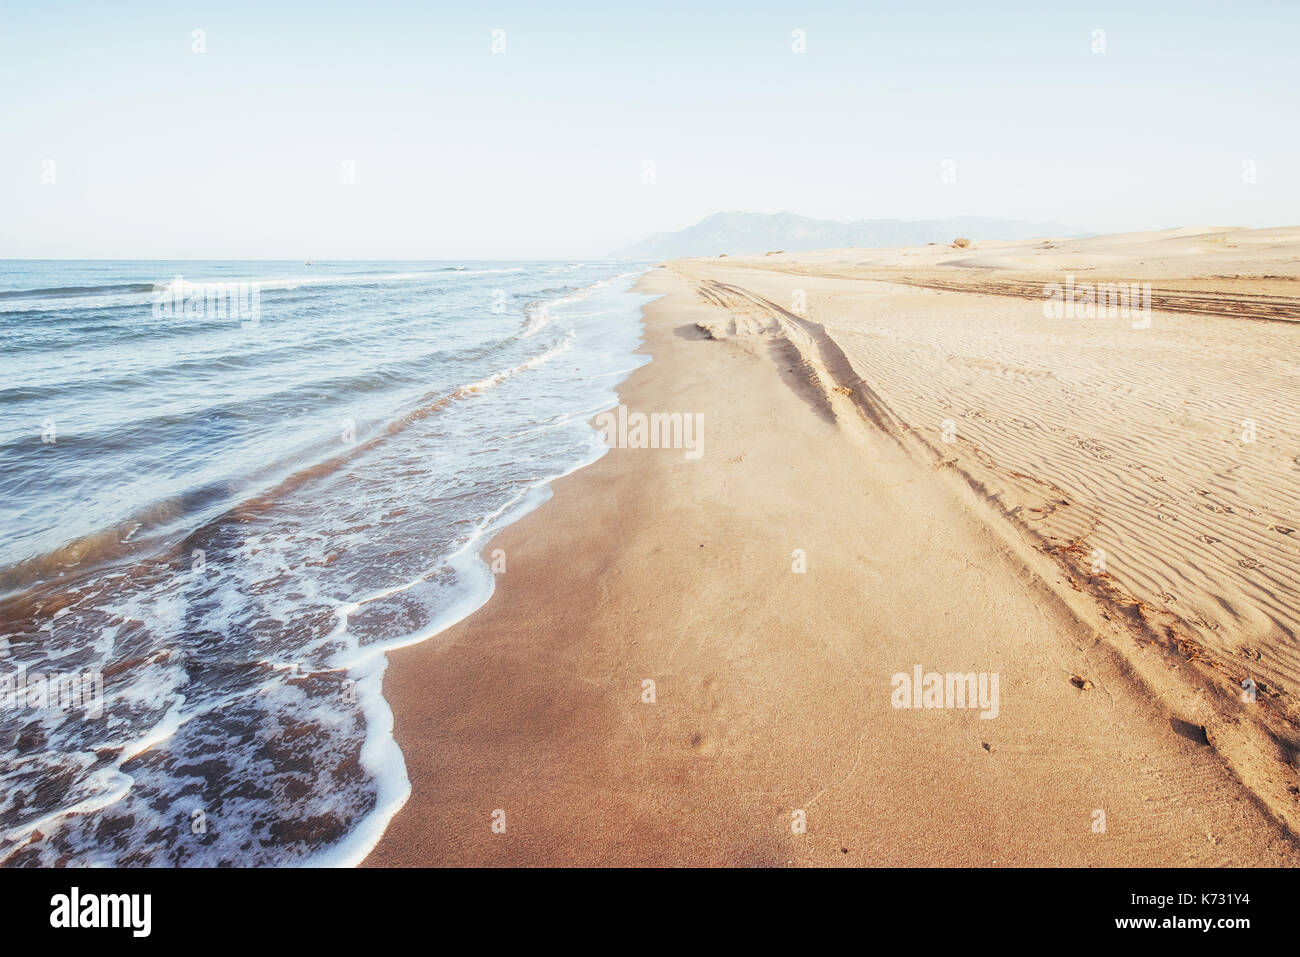 Fantastic views of the sea coast with yellow sand and blue water - Stock Image